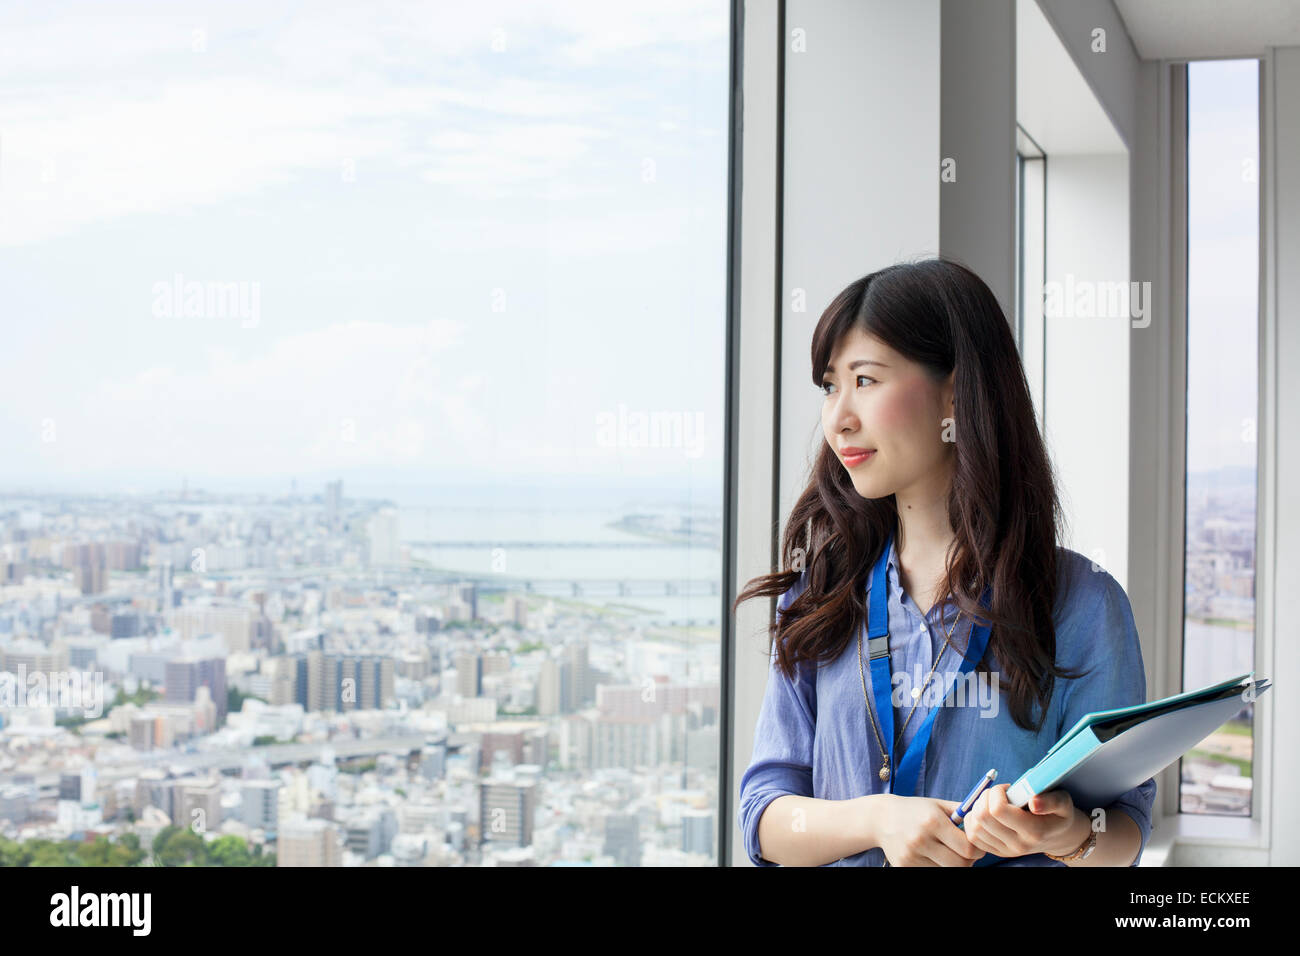 A working woman in an office building. - Stock Image